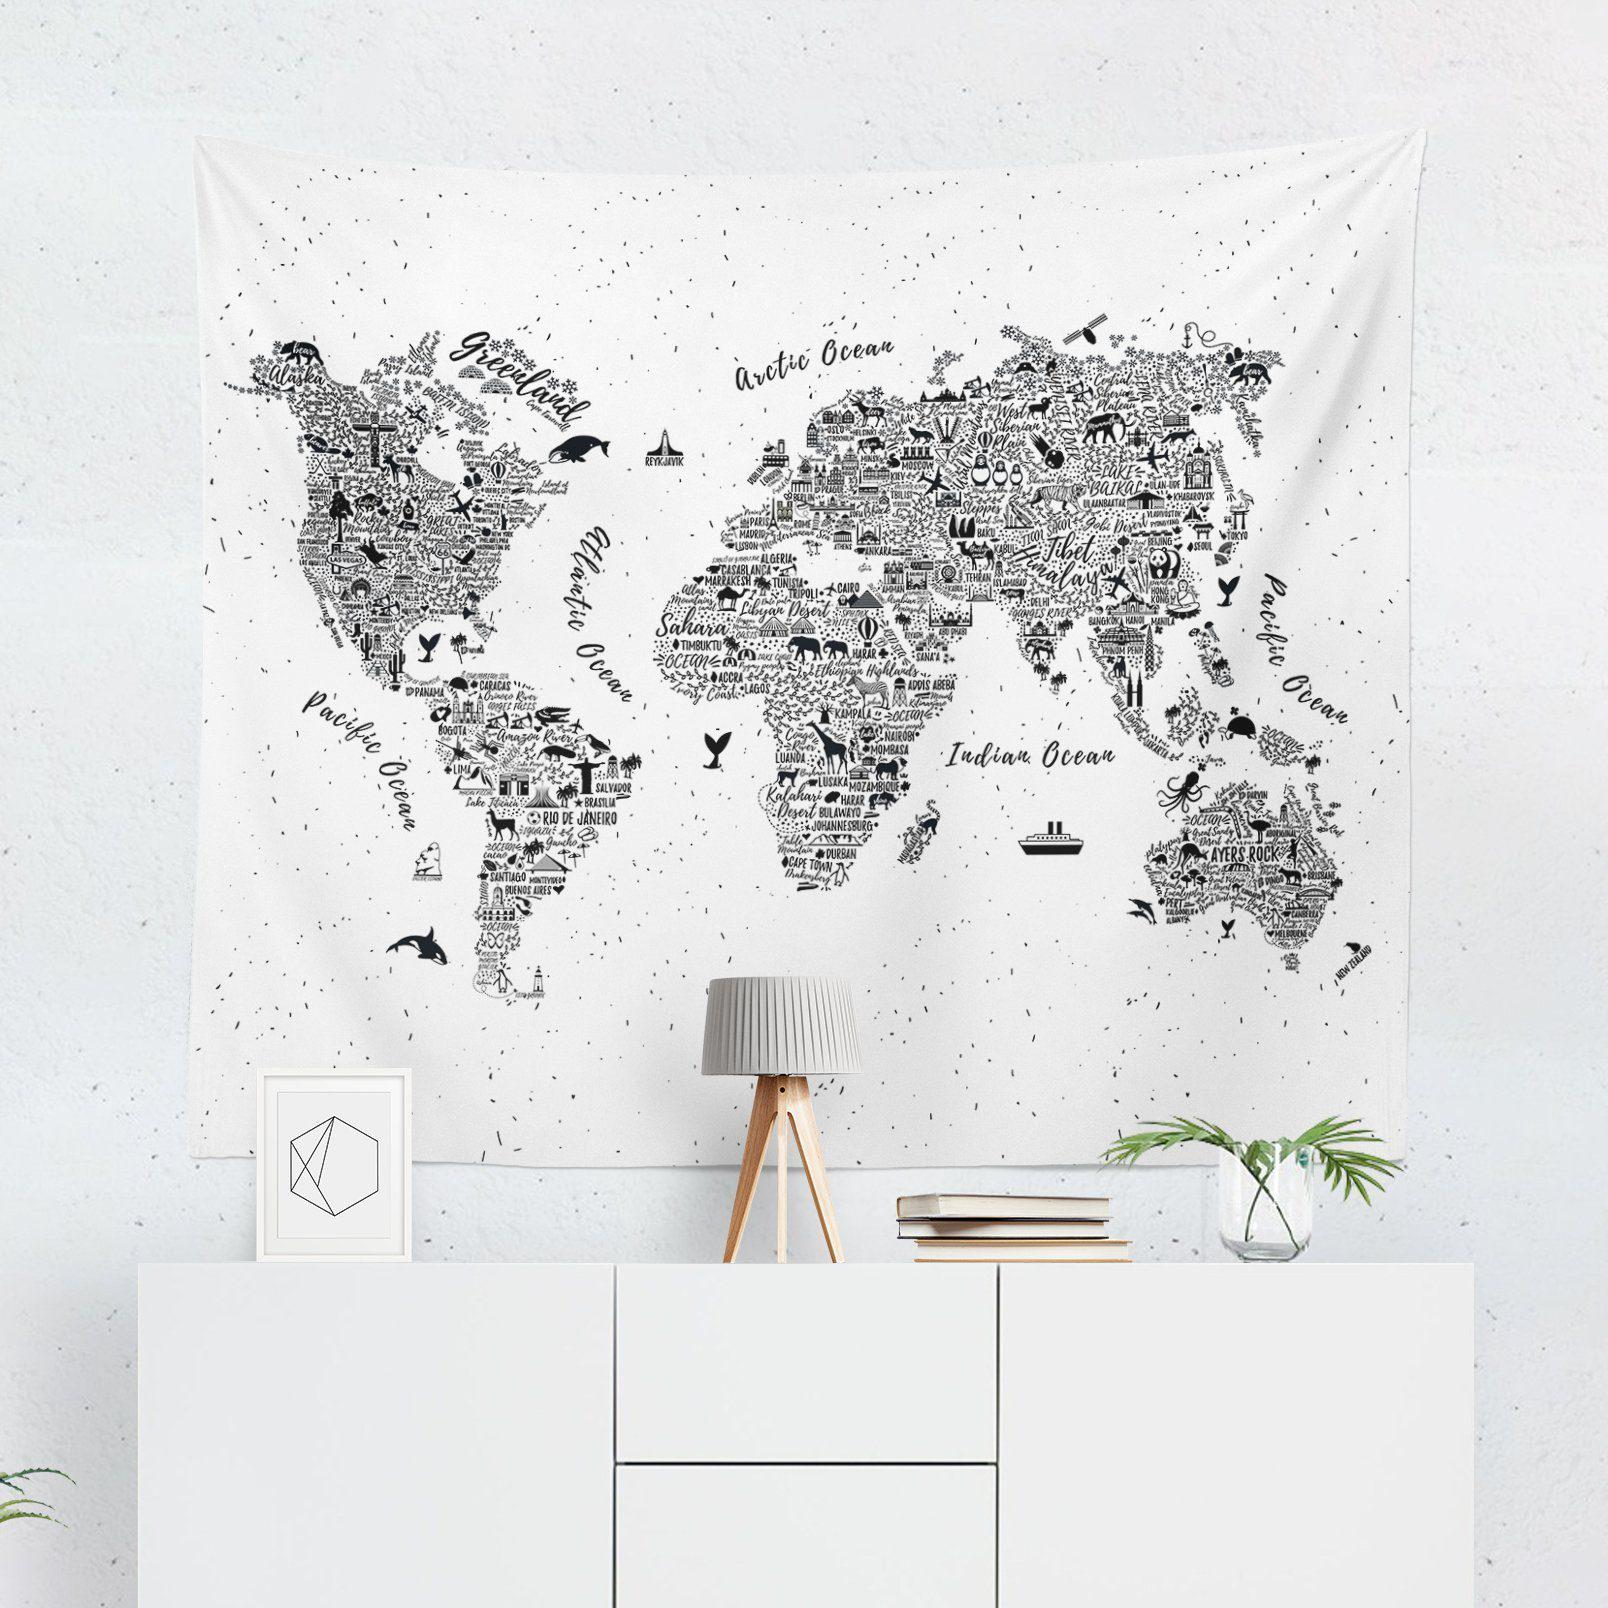 World Map Tapestry on world map search engine, world map family, world map art, world map red, world map pillow, world map photography, world map poster, world map engraving, world map bedding, world map painting, world map leather, world map mosaic, world map lithograph, world map furniture, world map in spanish, world map legend, world map cross stitch pattern, world map collage, world map conspiracy, world map america,